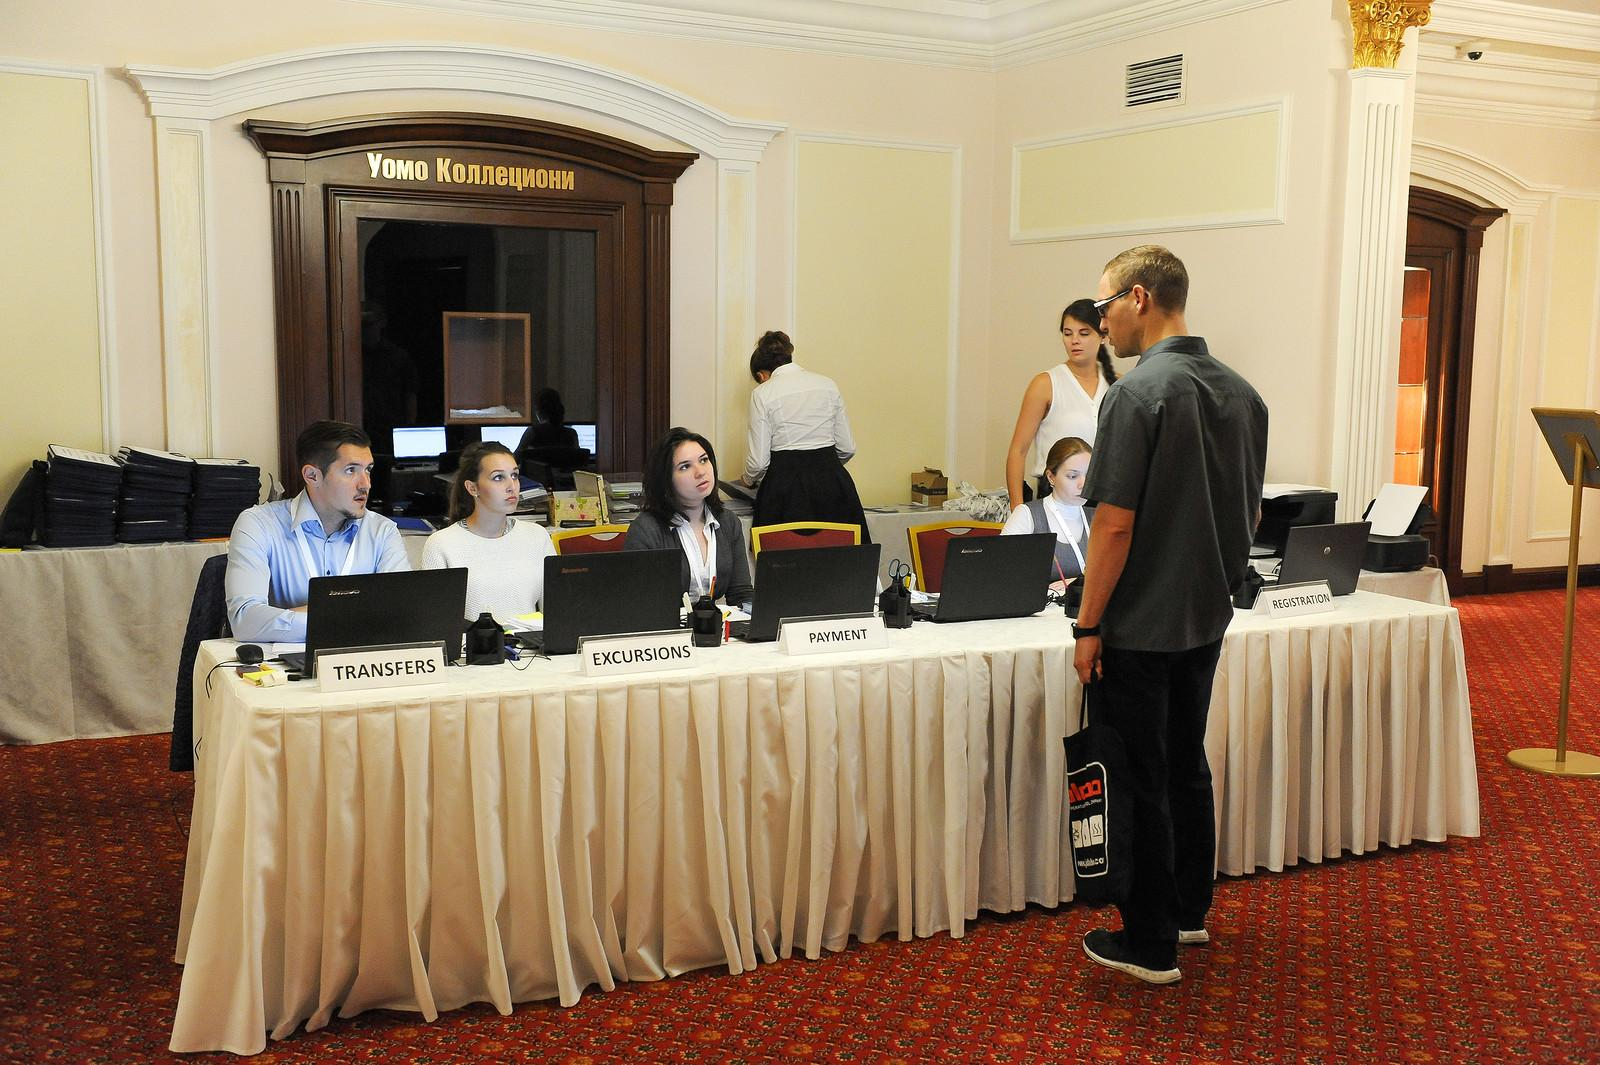 Moscow Hosted the 18th European Carbohydrate Symposium